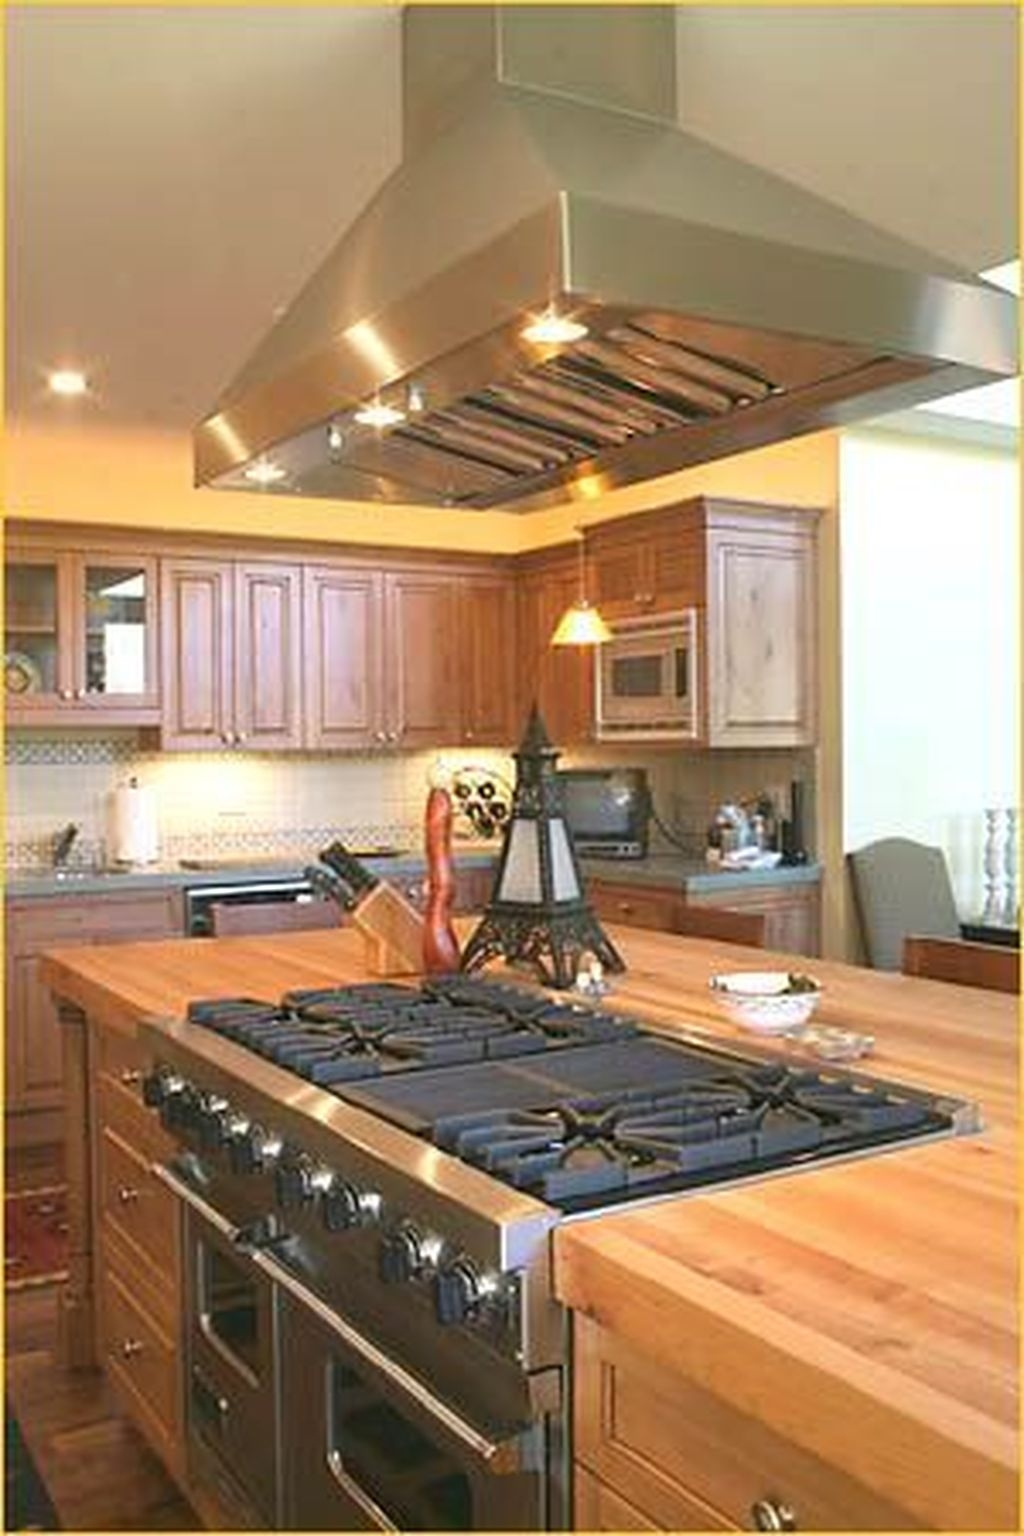 Awesome Rustic Kitchen Island Design Ideas 35